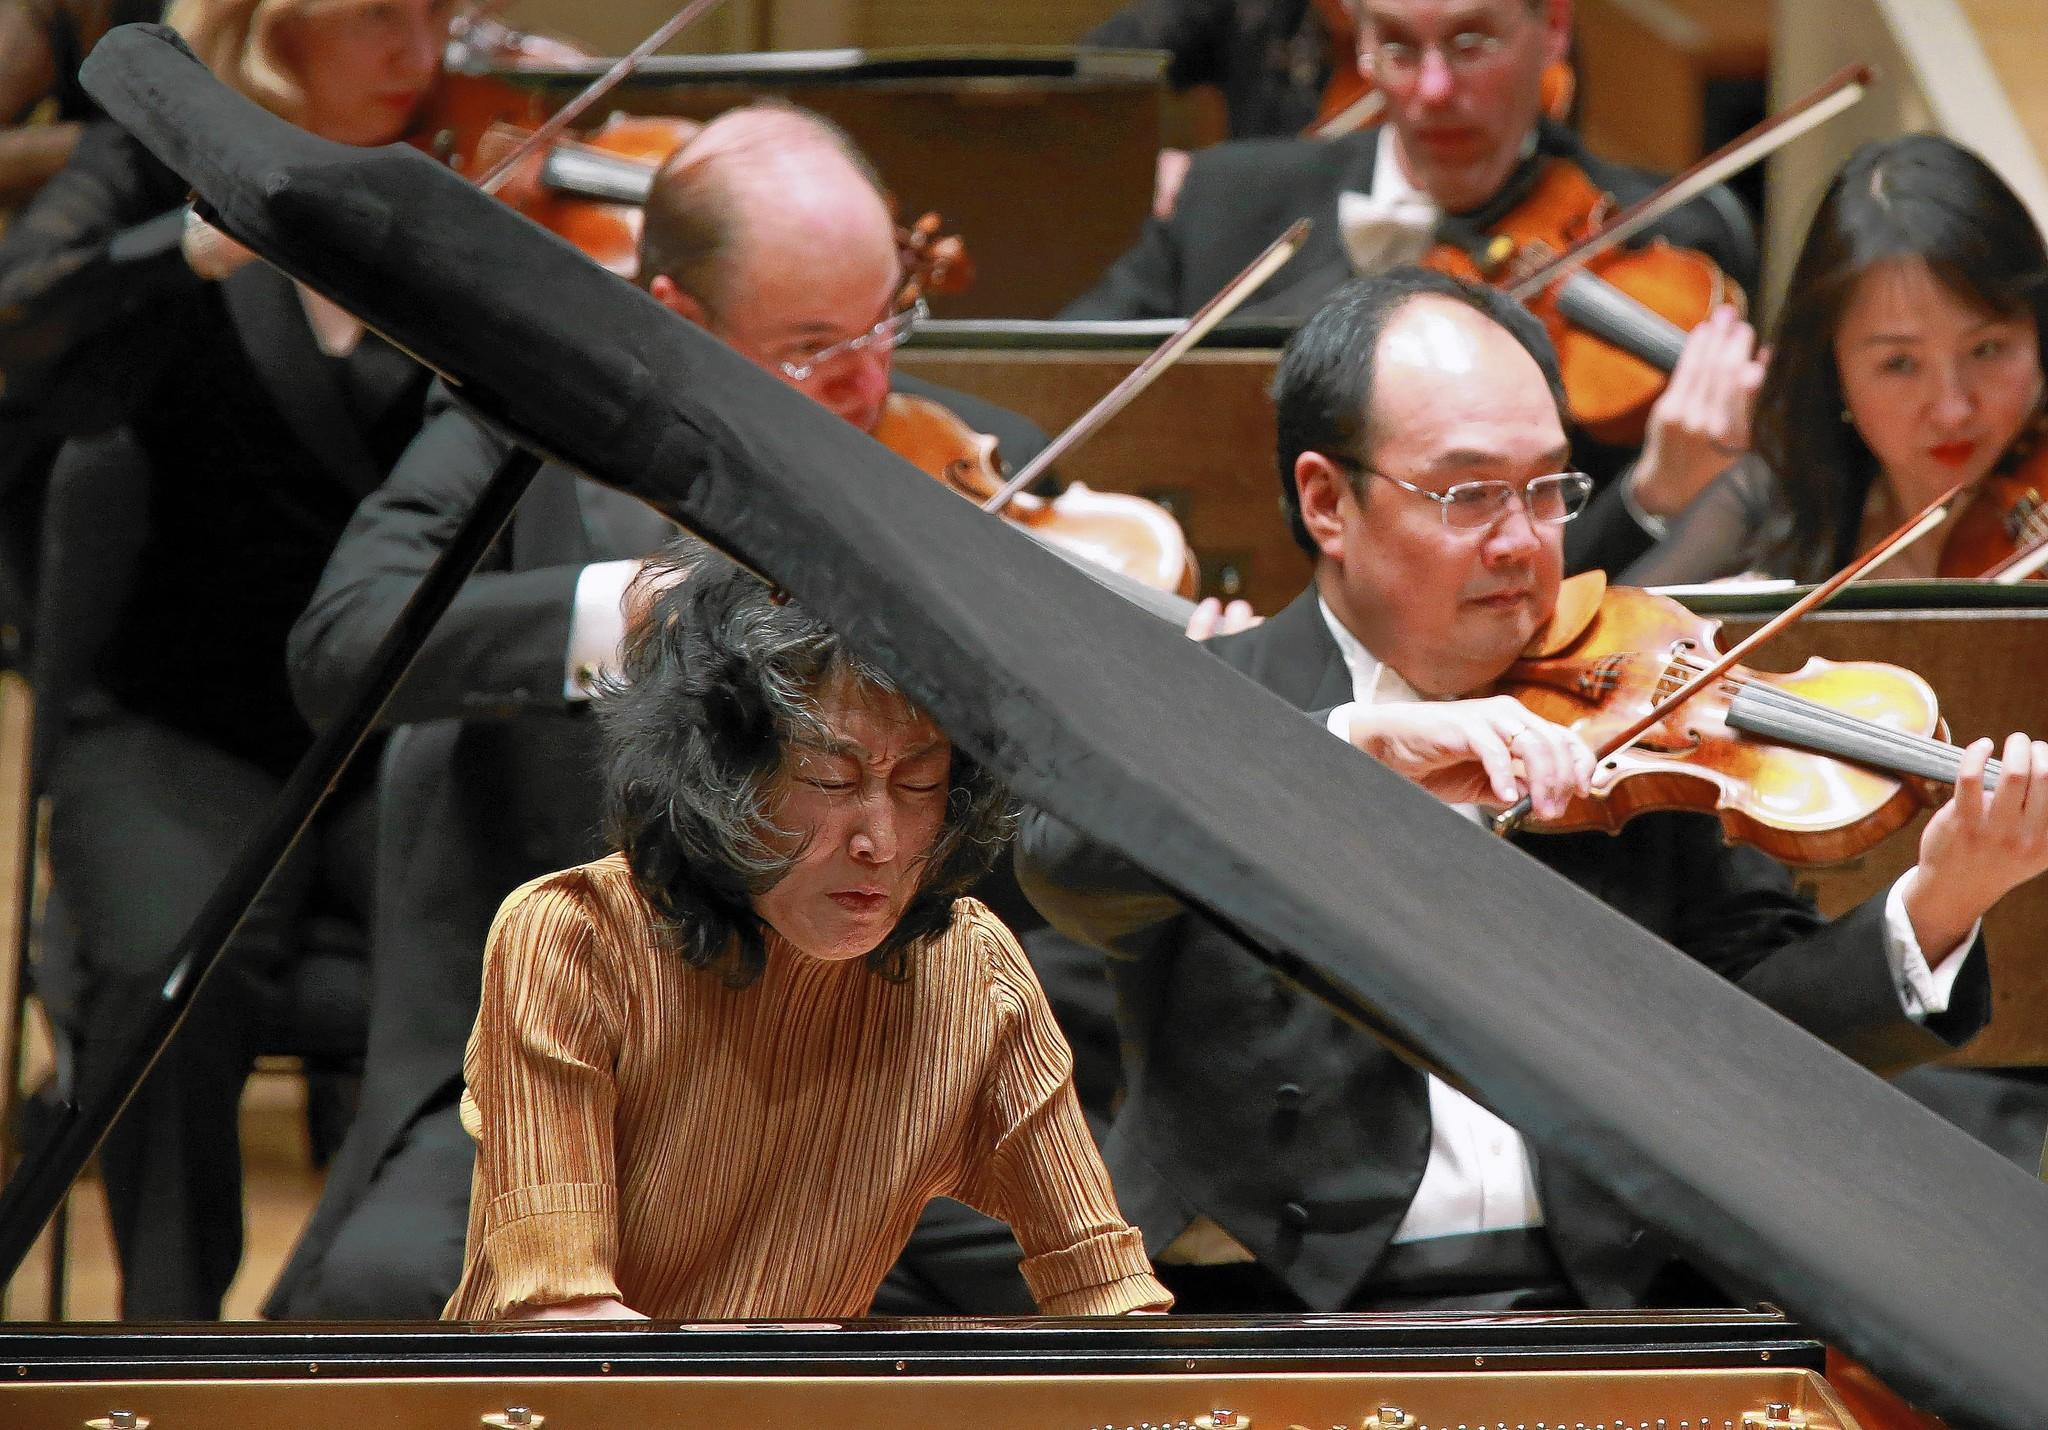 Mitsuko Uchida performs Schumann's Piano Concerto in A Minor under the direction of Conductor Riccardo Muti at Symphony Hall.